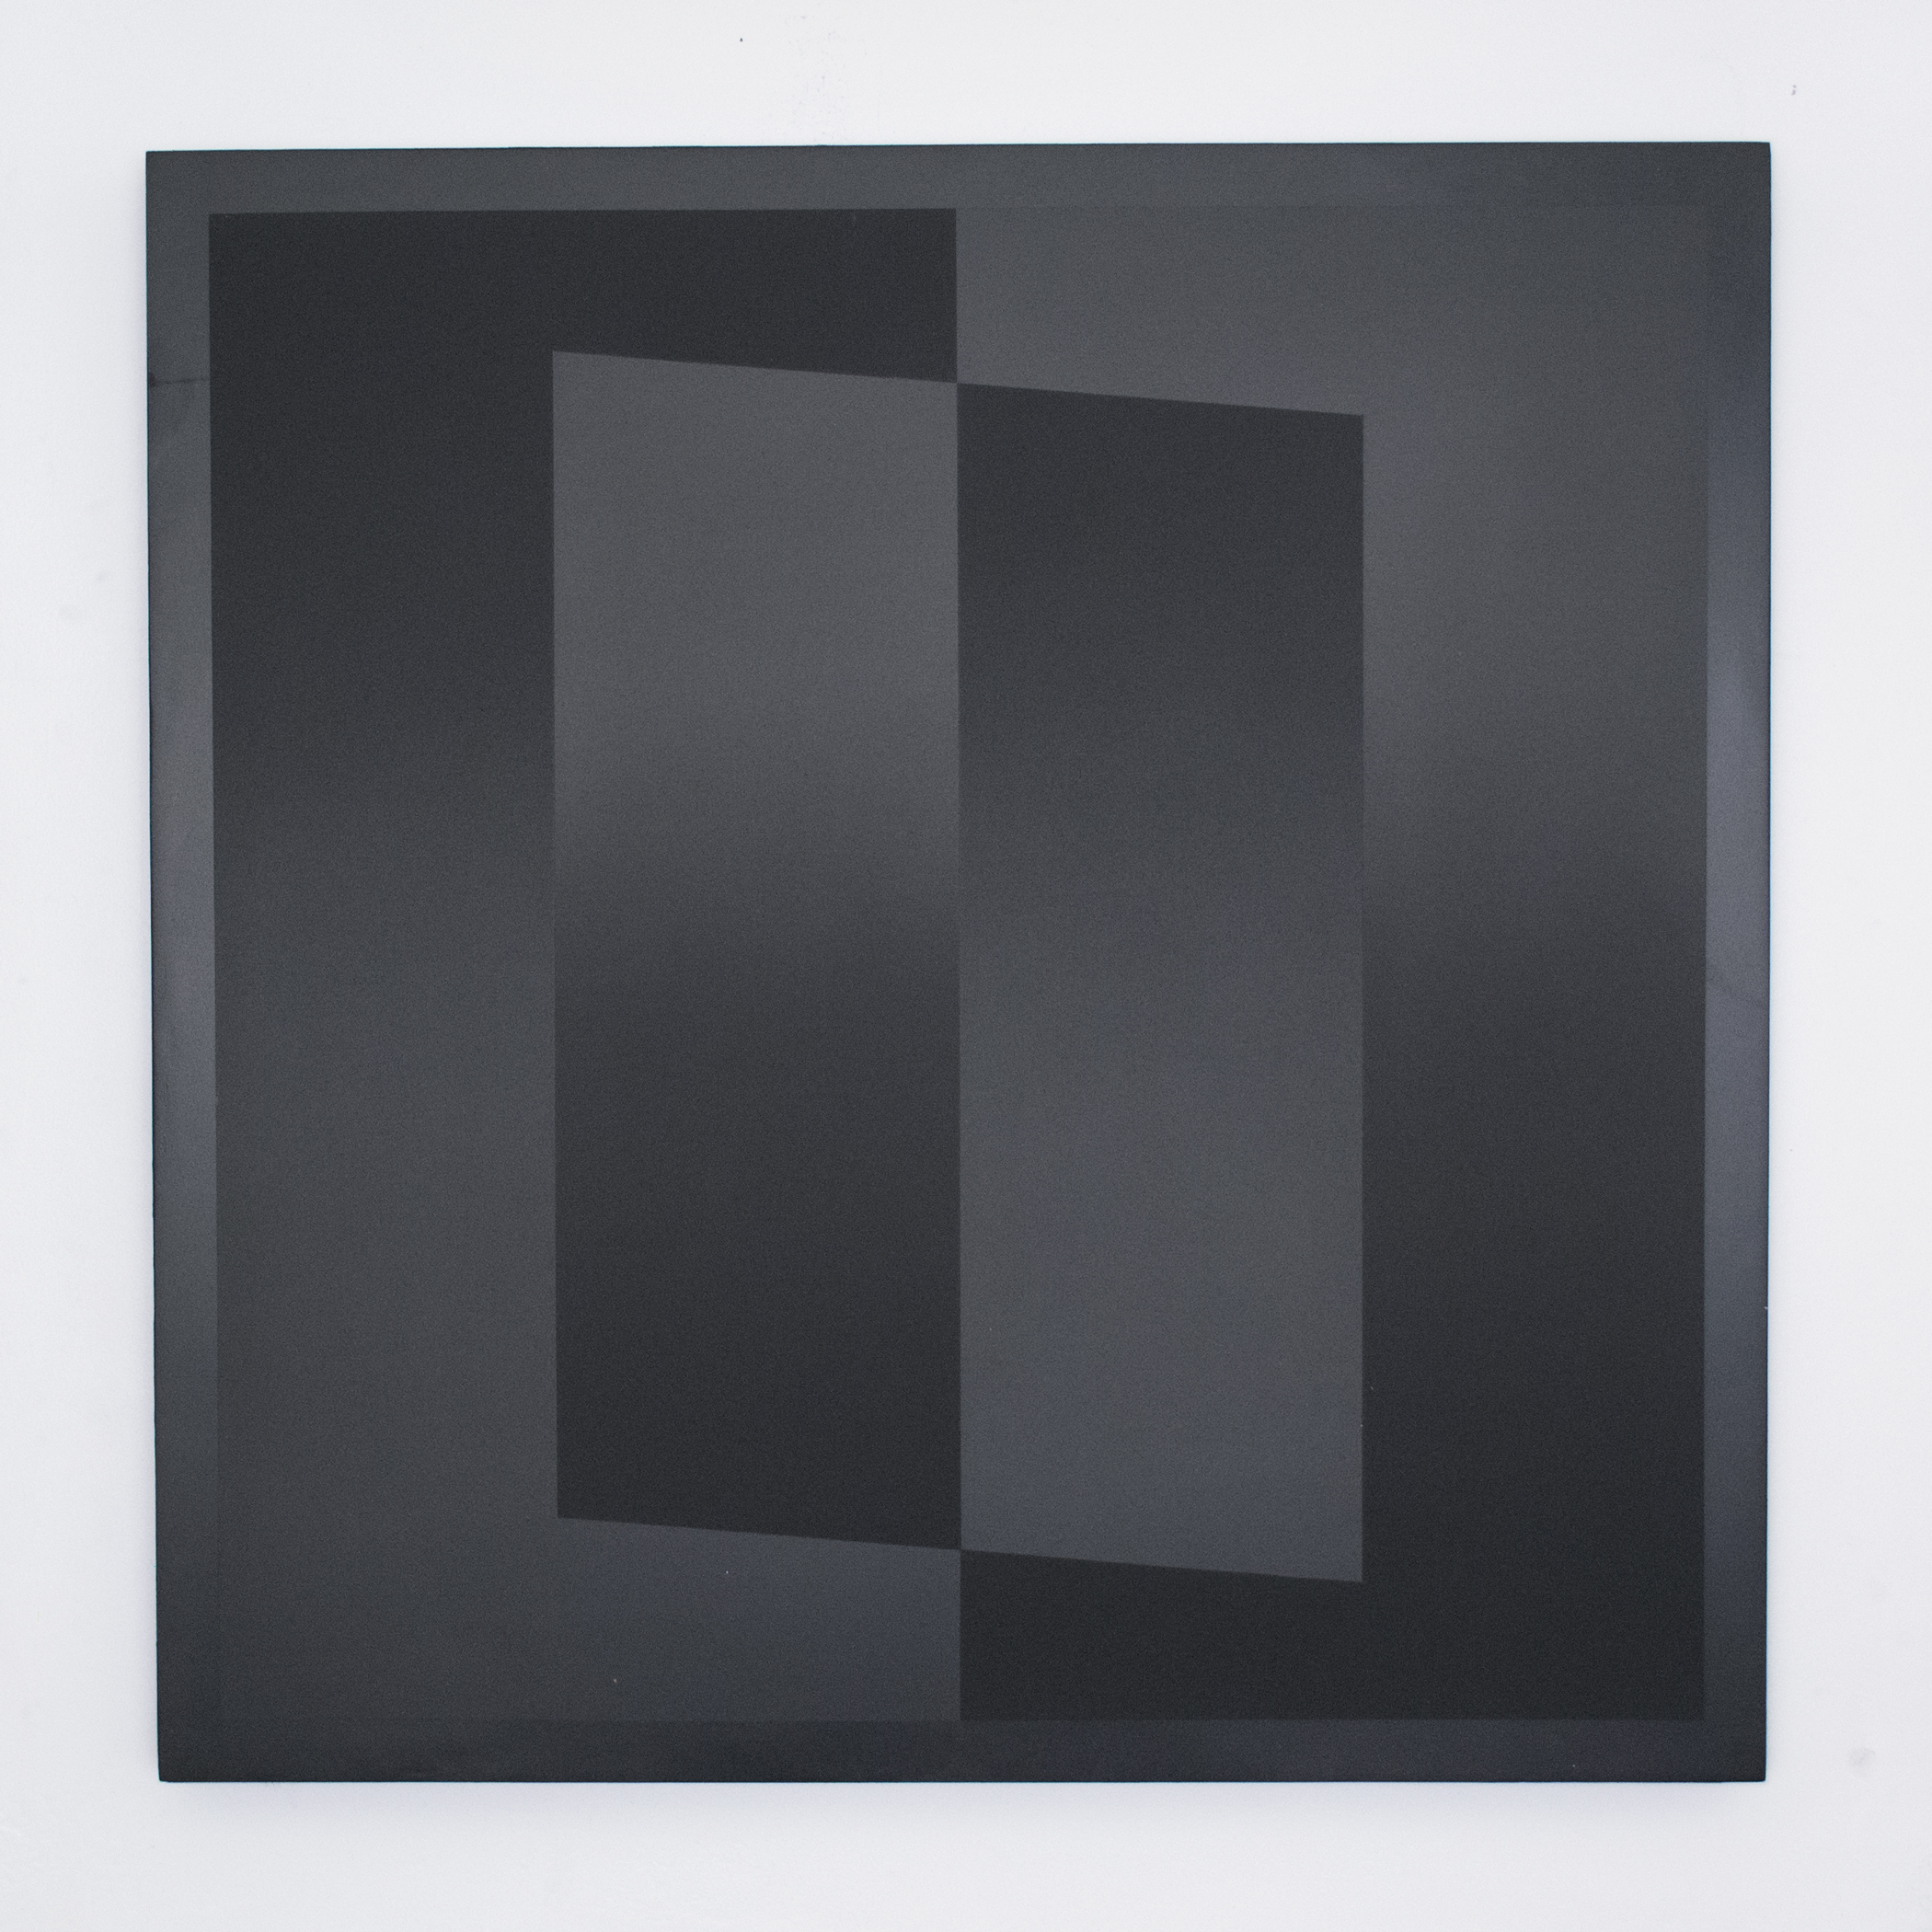 untitled - two parallelograms in two rectangles, matte/gloss)